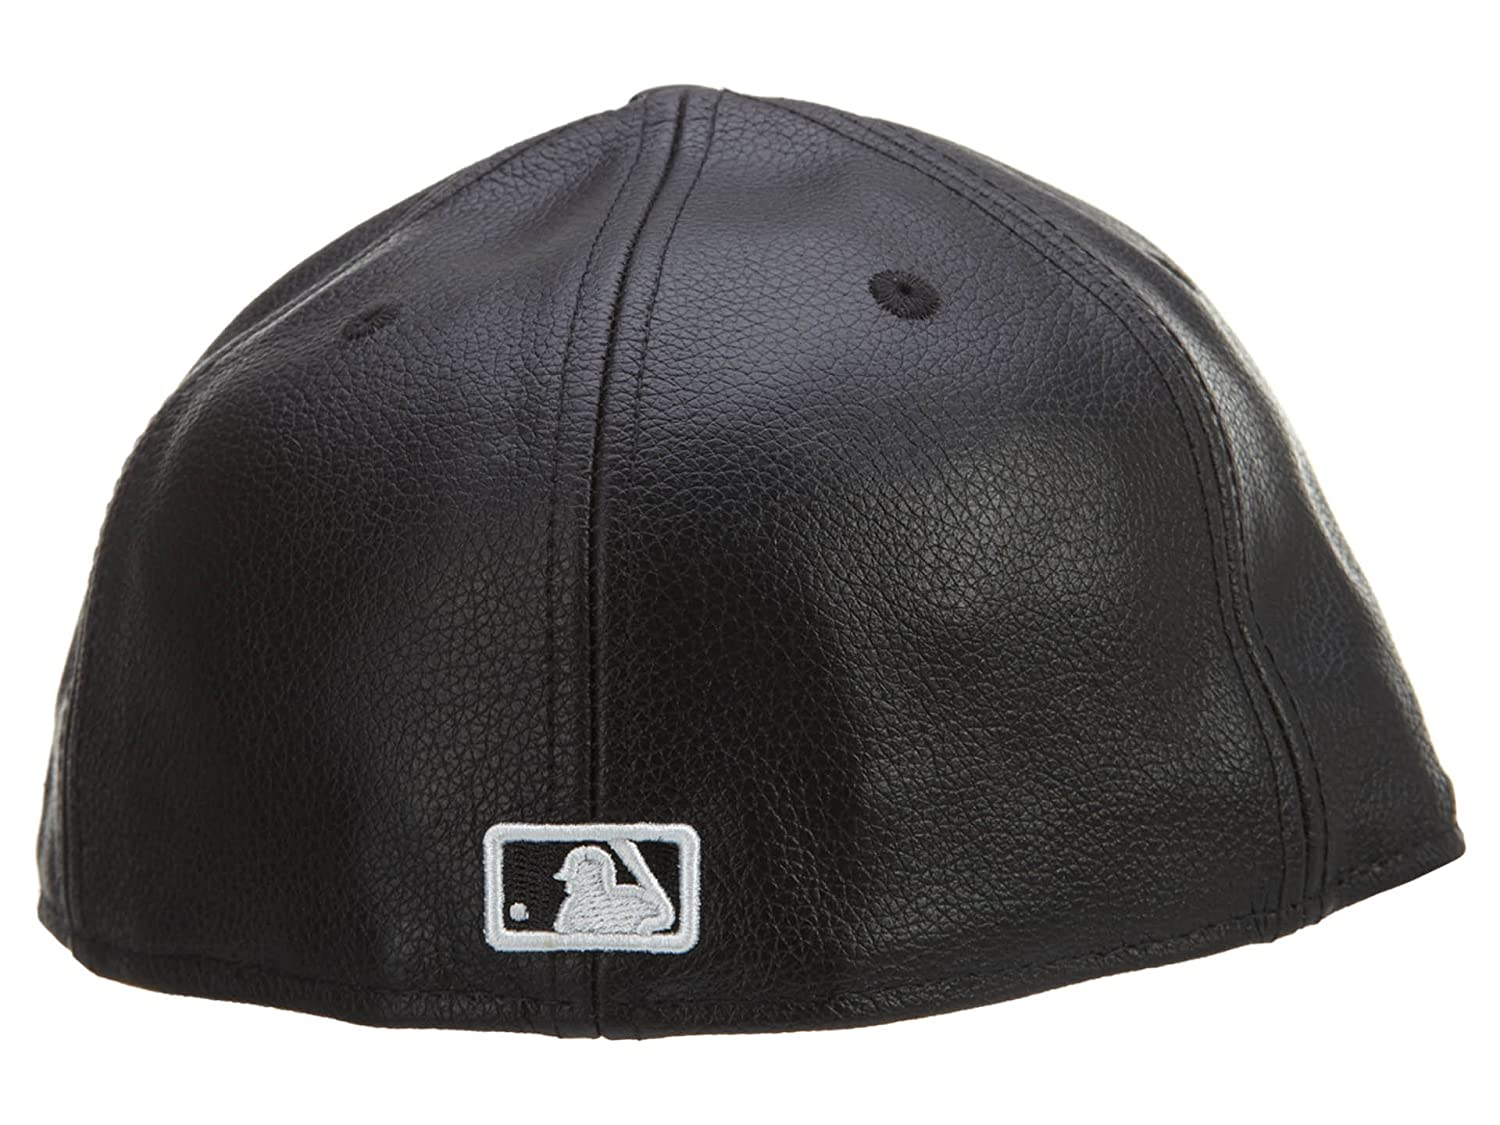 Amazon.com  New Era 59Fifty Leather New York Yankees Black Fitted Cap   Clothing 2a97022ed74